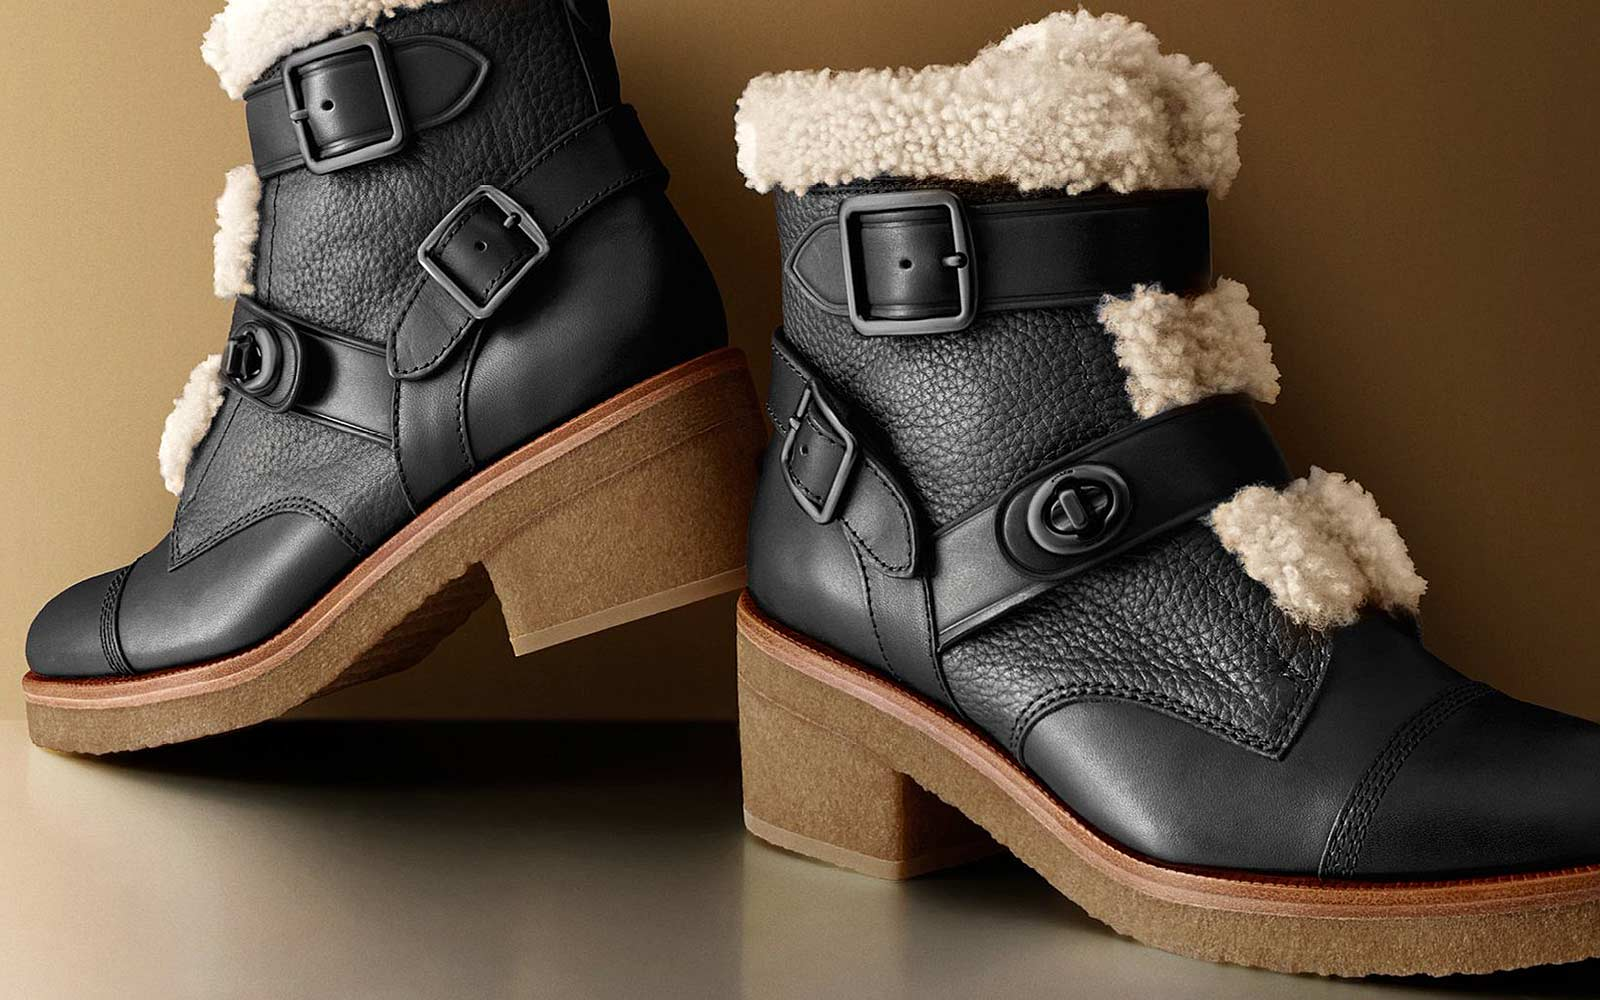 15 Functional and Stylish Snow Boots to Get You Through This Winter